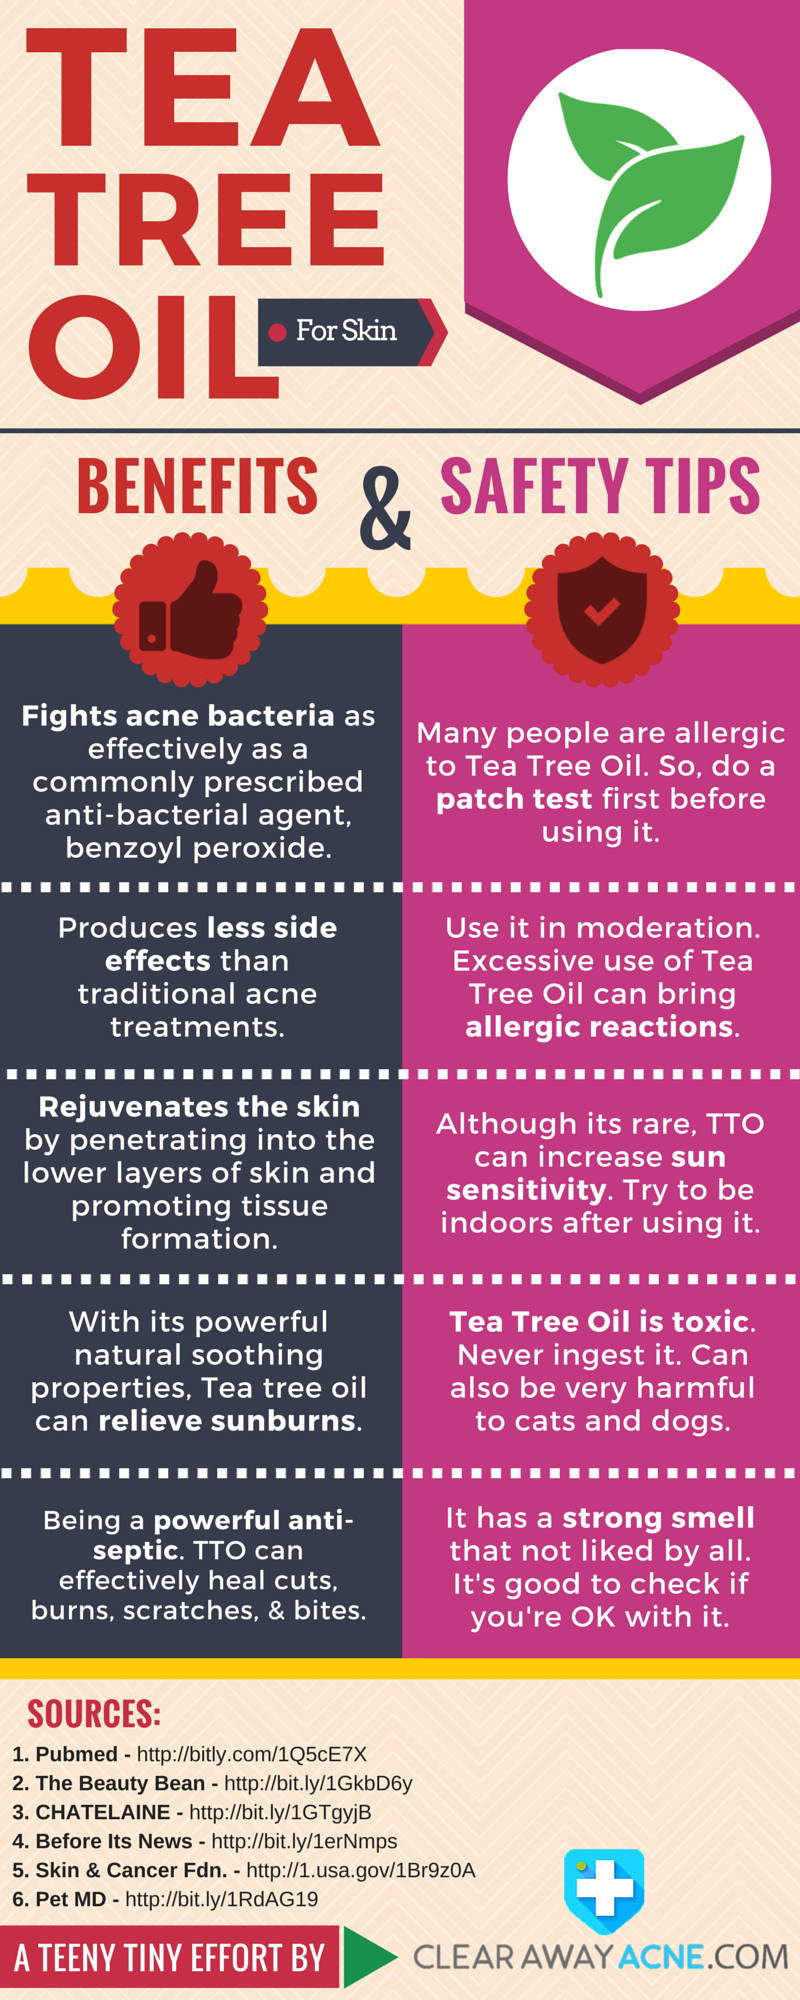 Tea Tree Oil For Skin - Infographic